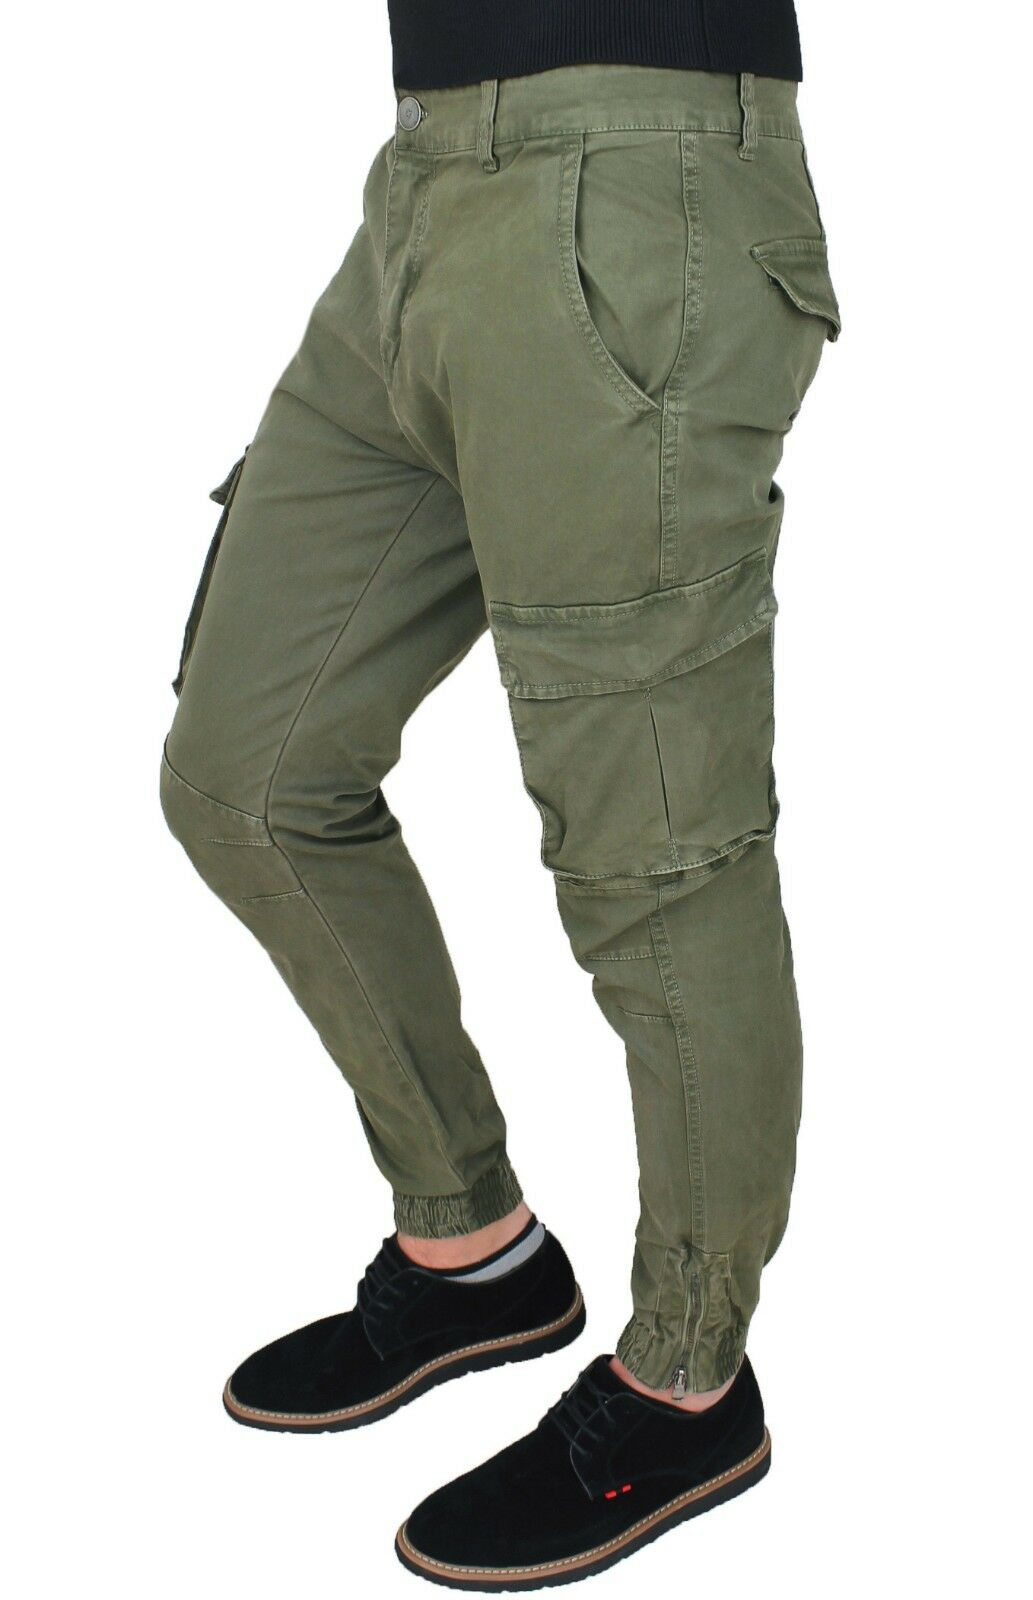 PANTALONI men DIAMOND CARGO green MILITARE SLIM FIT CON TASCONI LATERALI